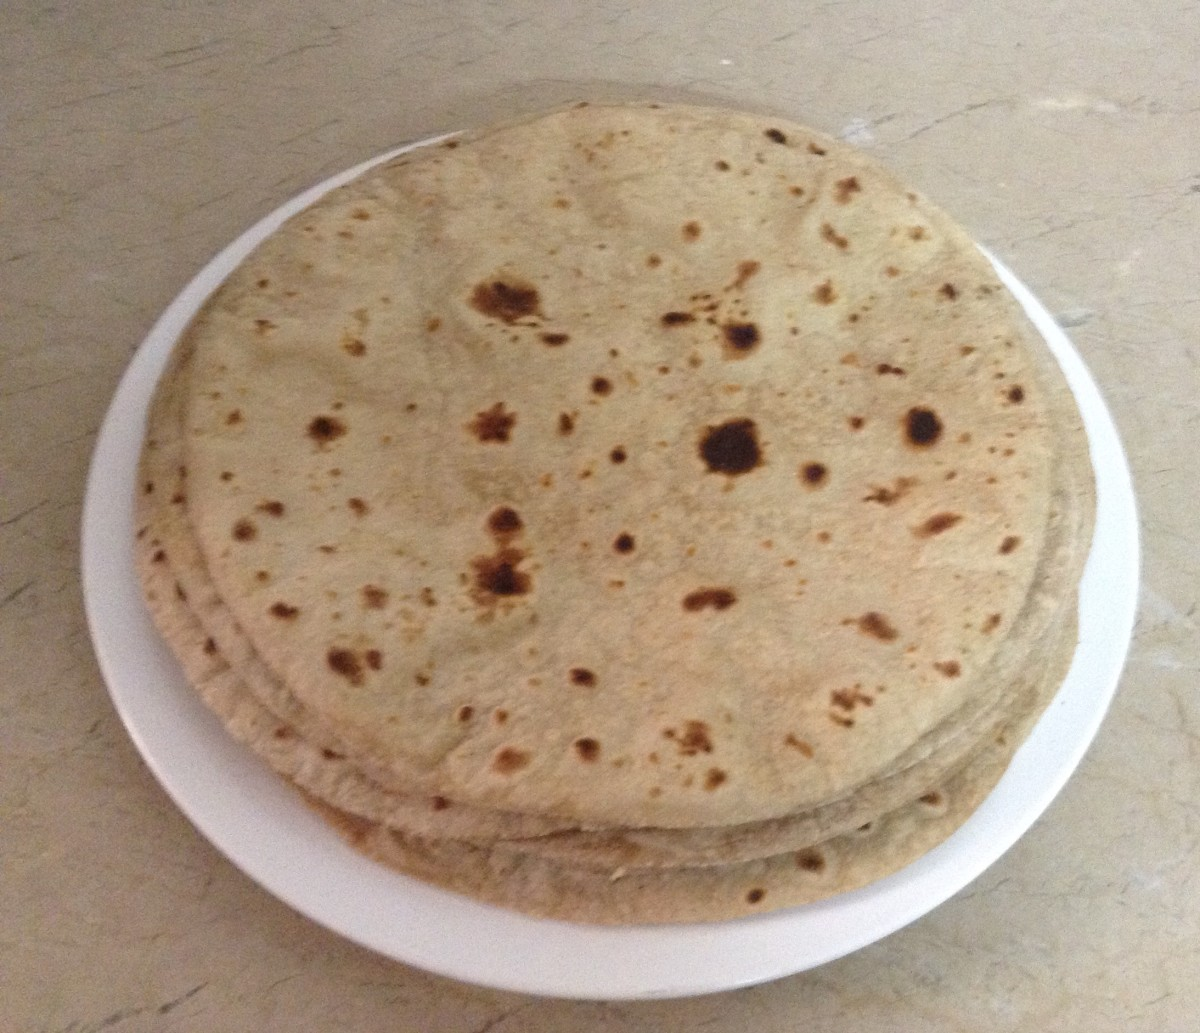 Use all the other pieces of dough to make the other Chapatis.